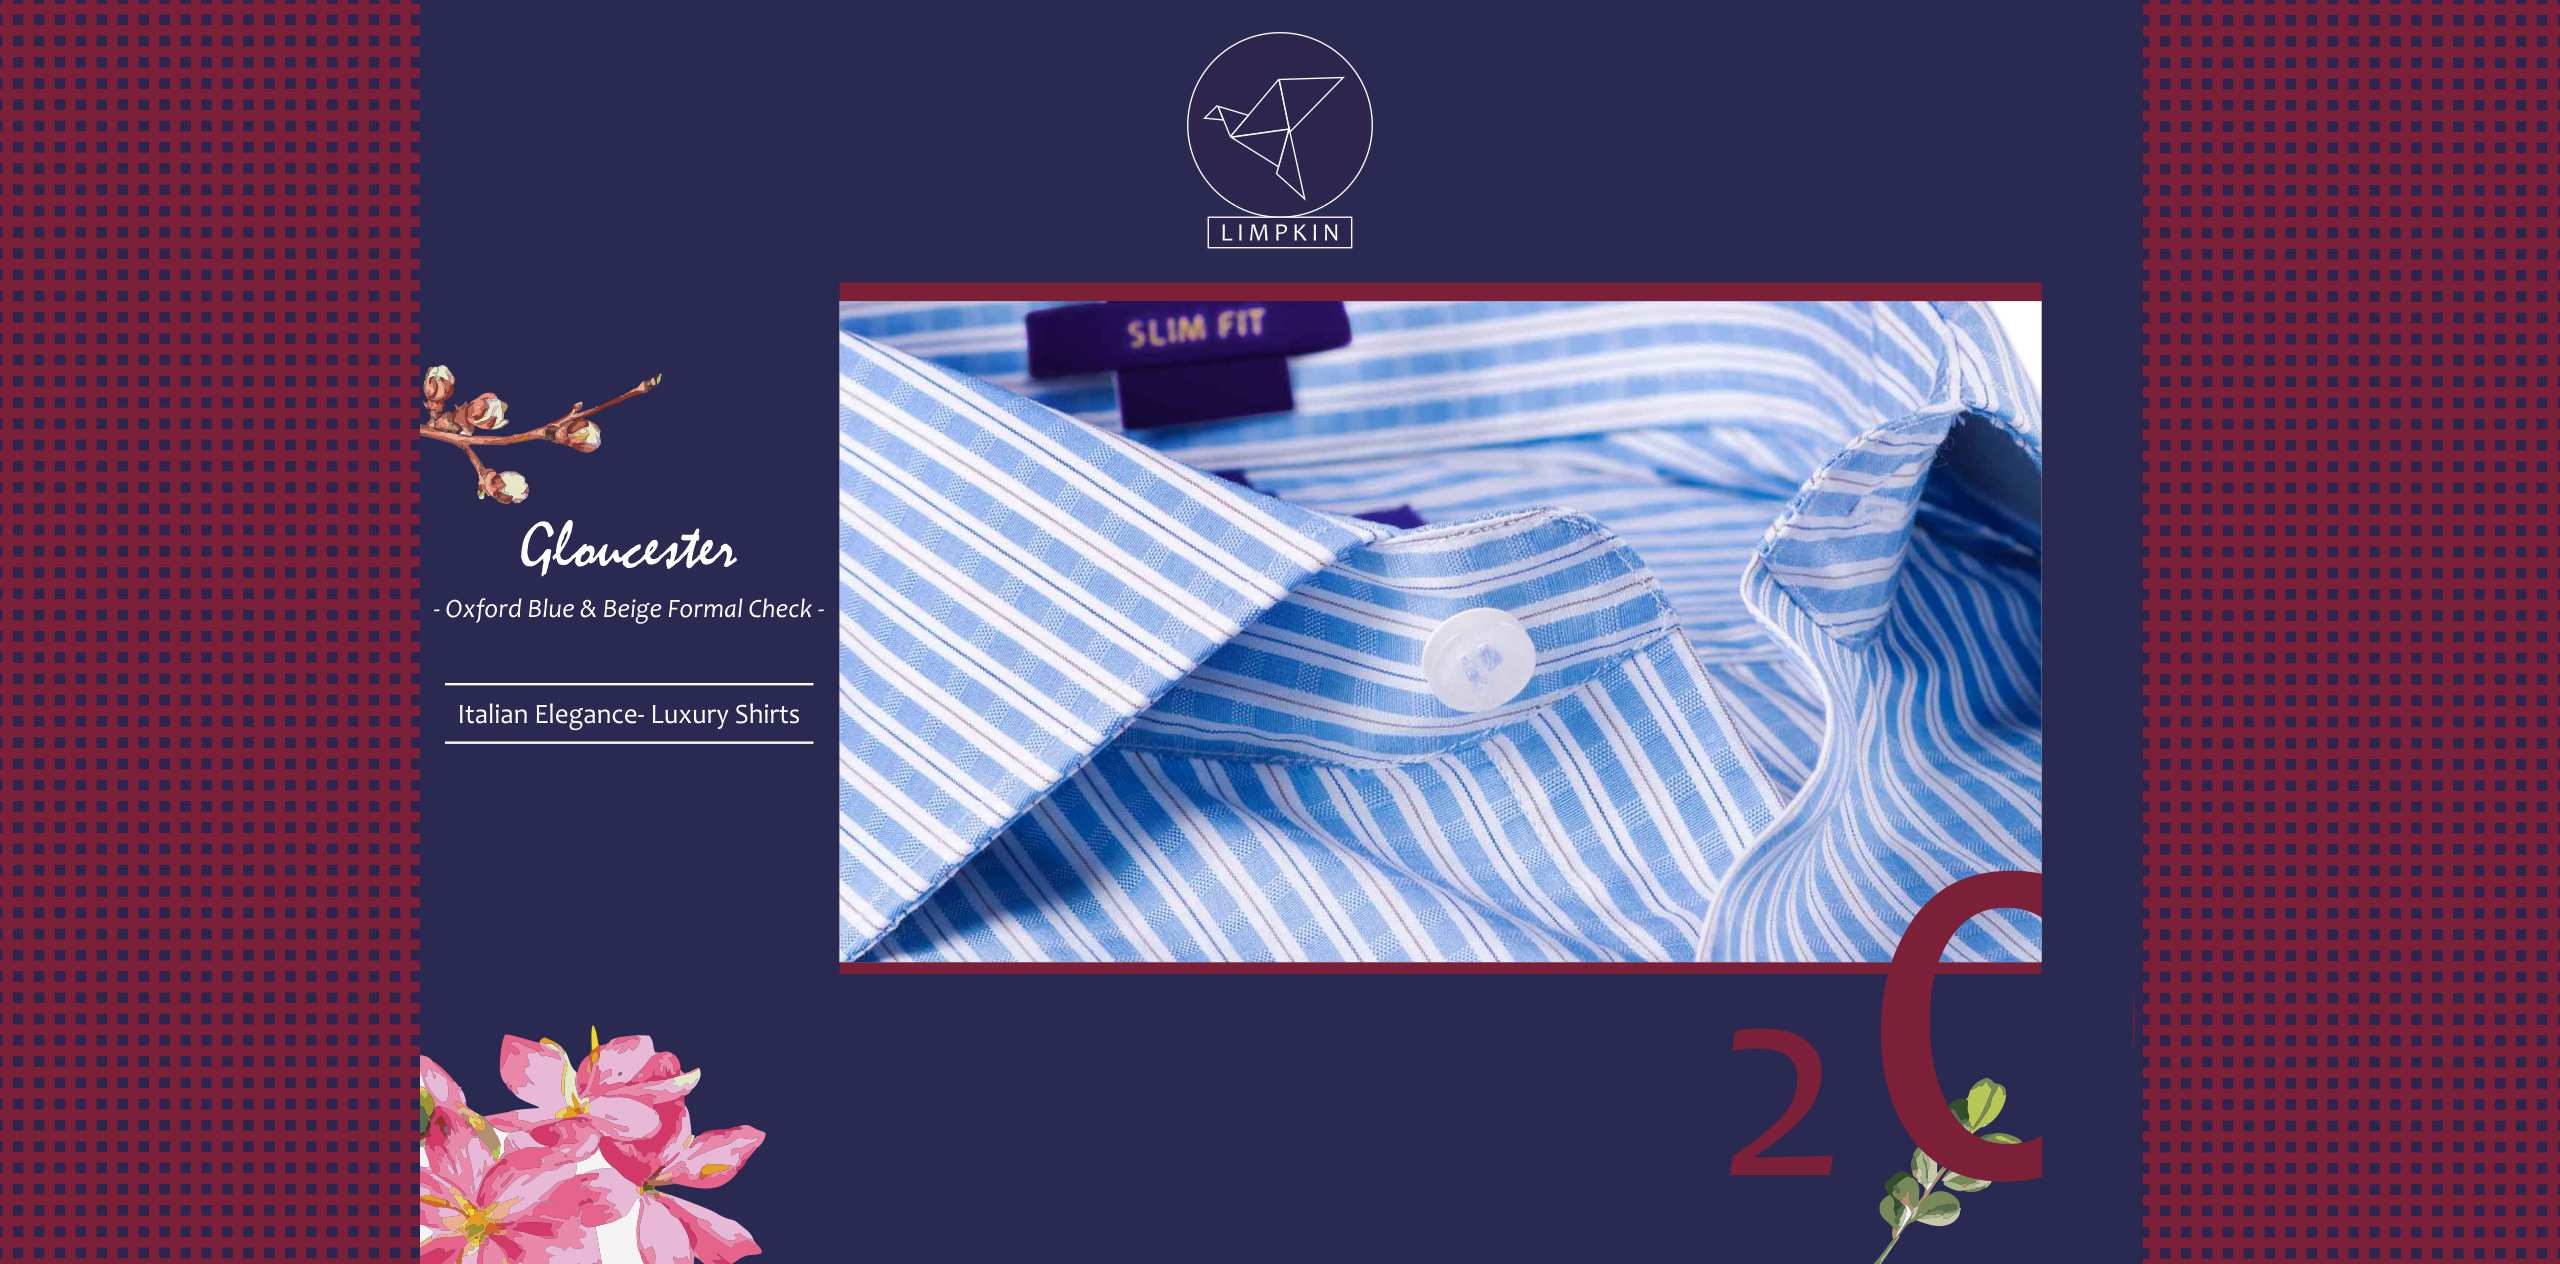 Gloucester- Oxford Blue & Beige Formal Check- 2/120 Egyptian Giza Cotton-  Delivery from 30th May - Banner